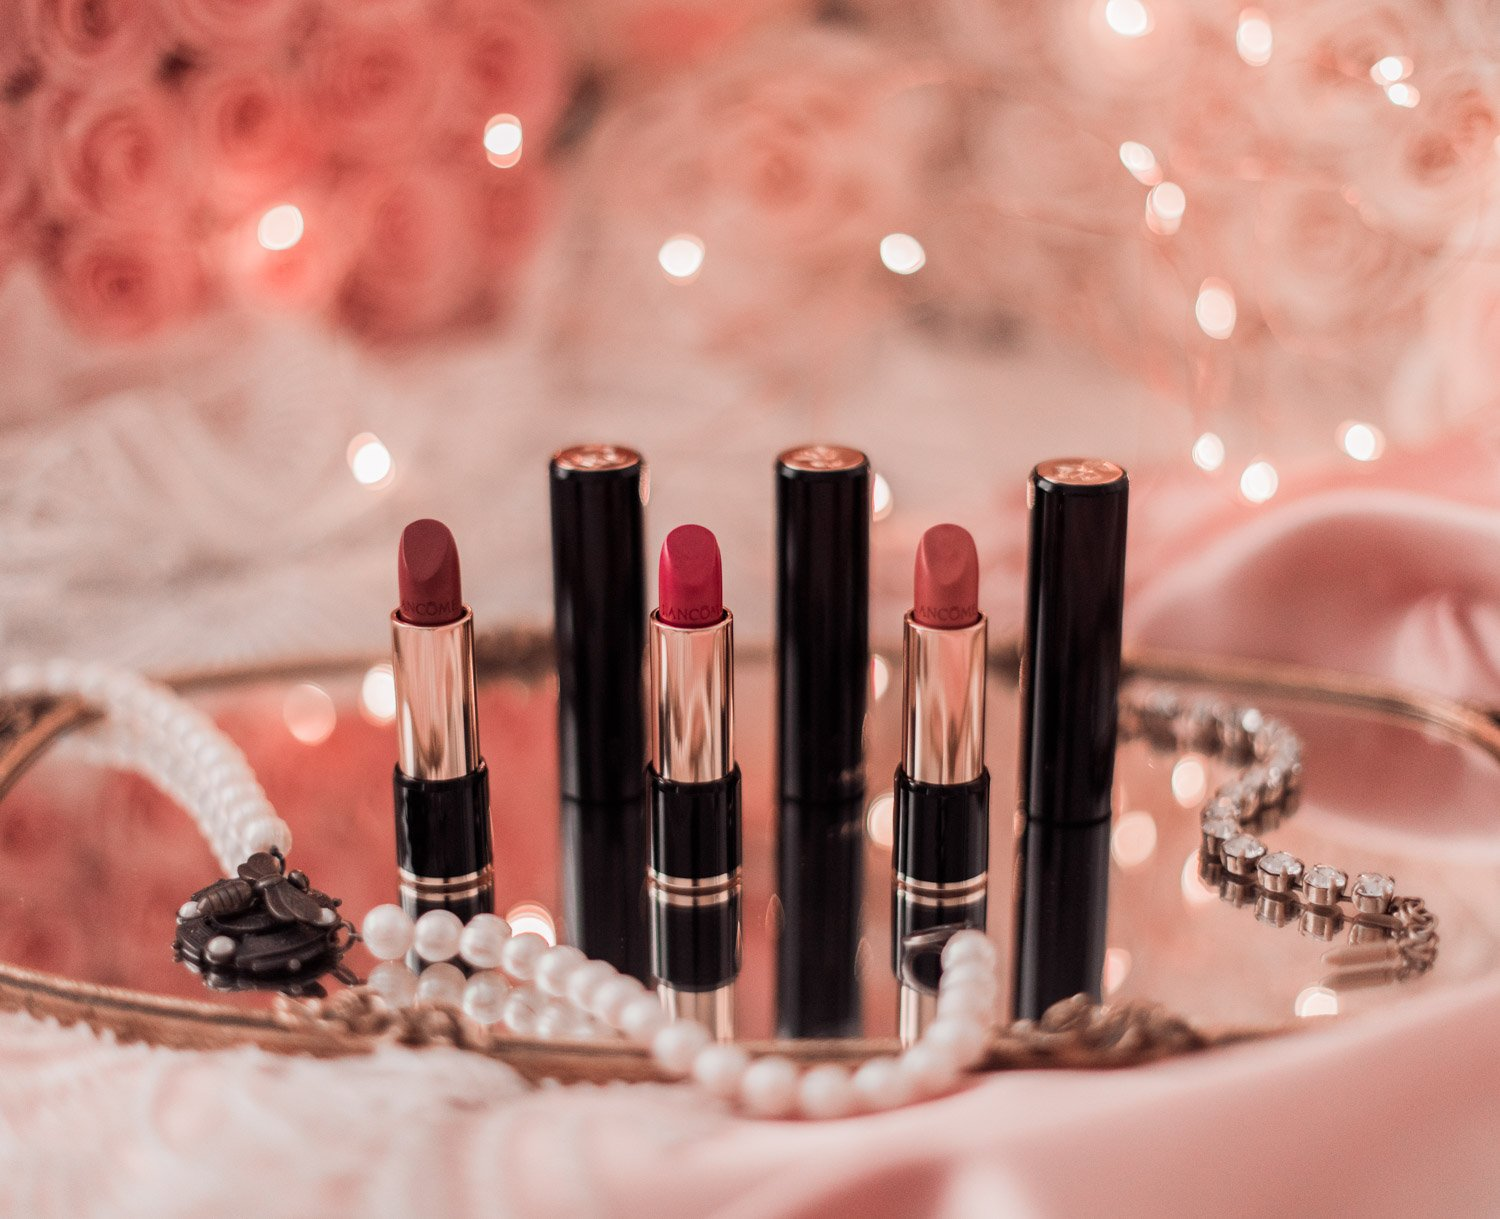 Fashion Blogger Elizabeth Hugen of Lizzie in Lace shares her Pretty Pink Holiday Gift Guide including these gorgeous Lancome lipstick set